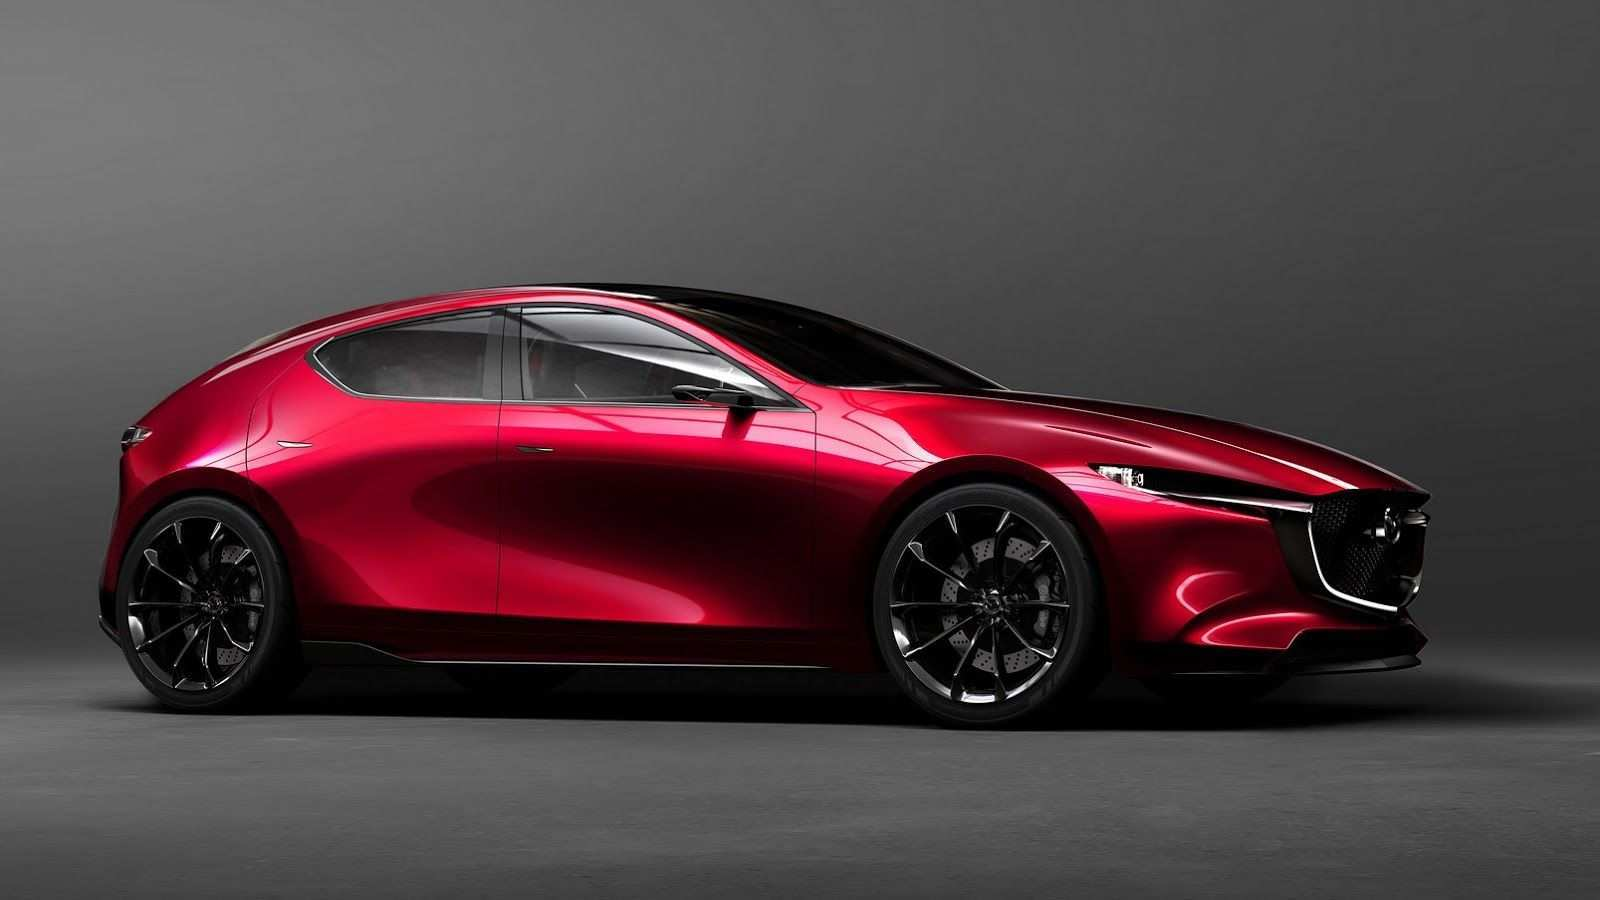 74 New New Mazda Kodo 2019 Release Date Exterior and Interior for New Mazda Kodo 2019 Release Date